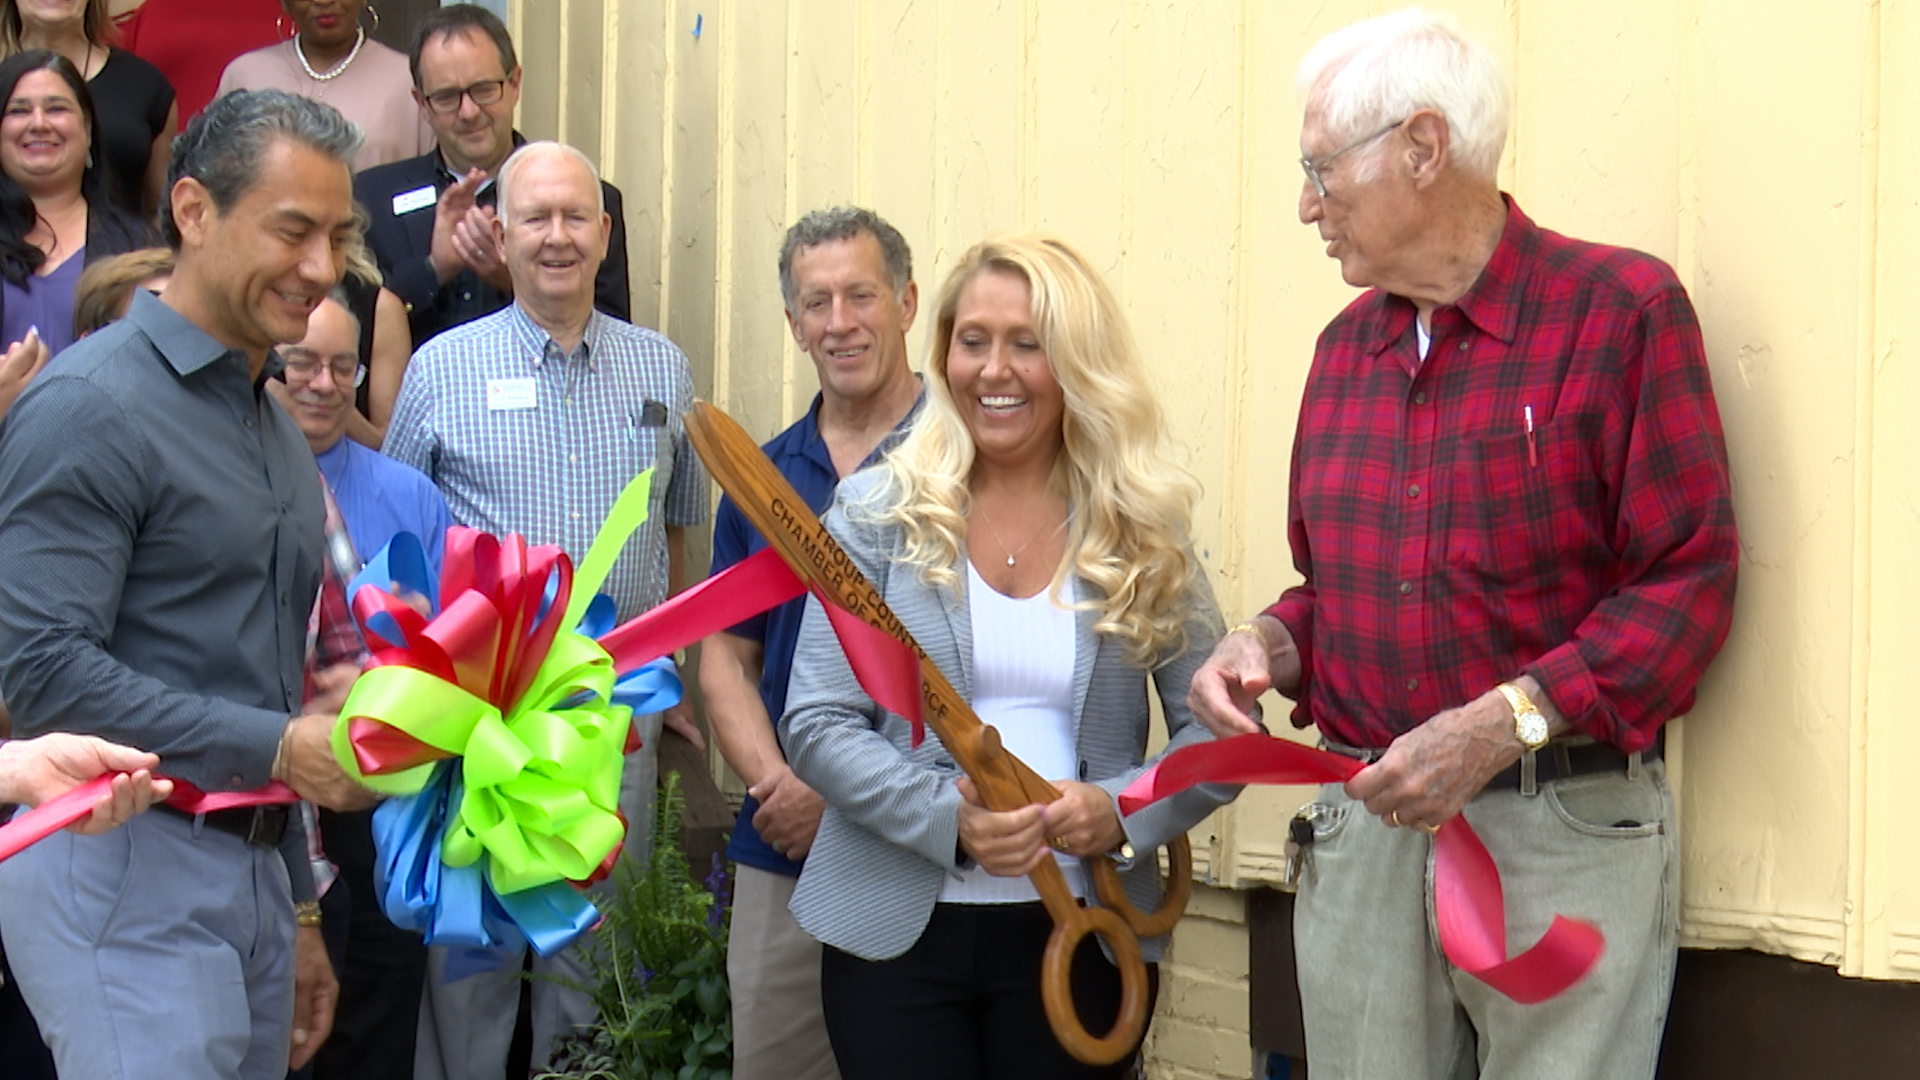 Habitats for Humanity Ribbon Cutting in LaGrange